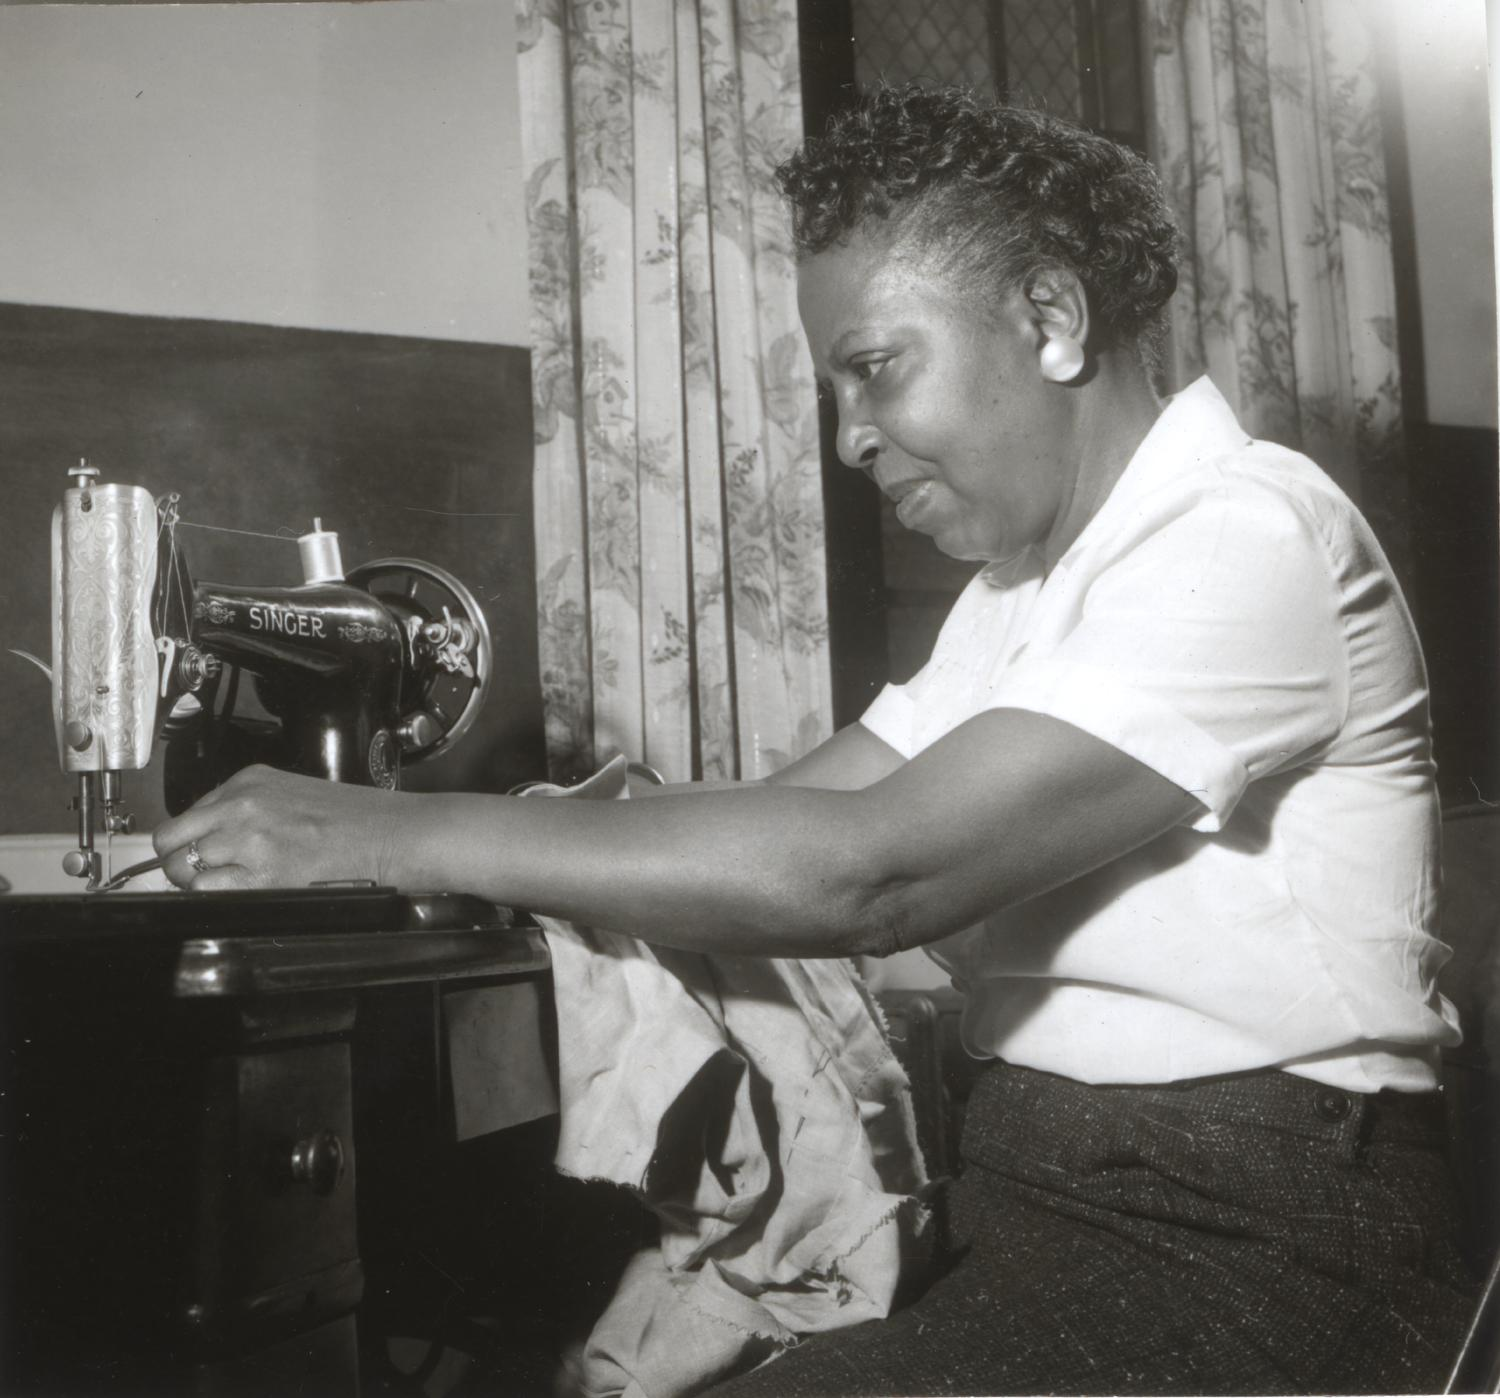 Liz Snyder sewing on a Singer sewing machine